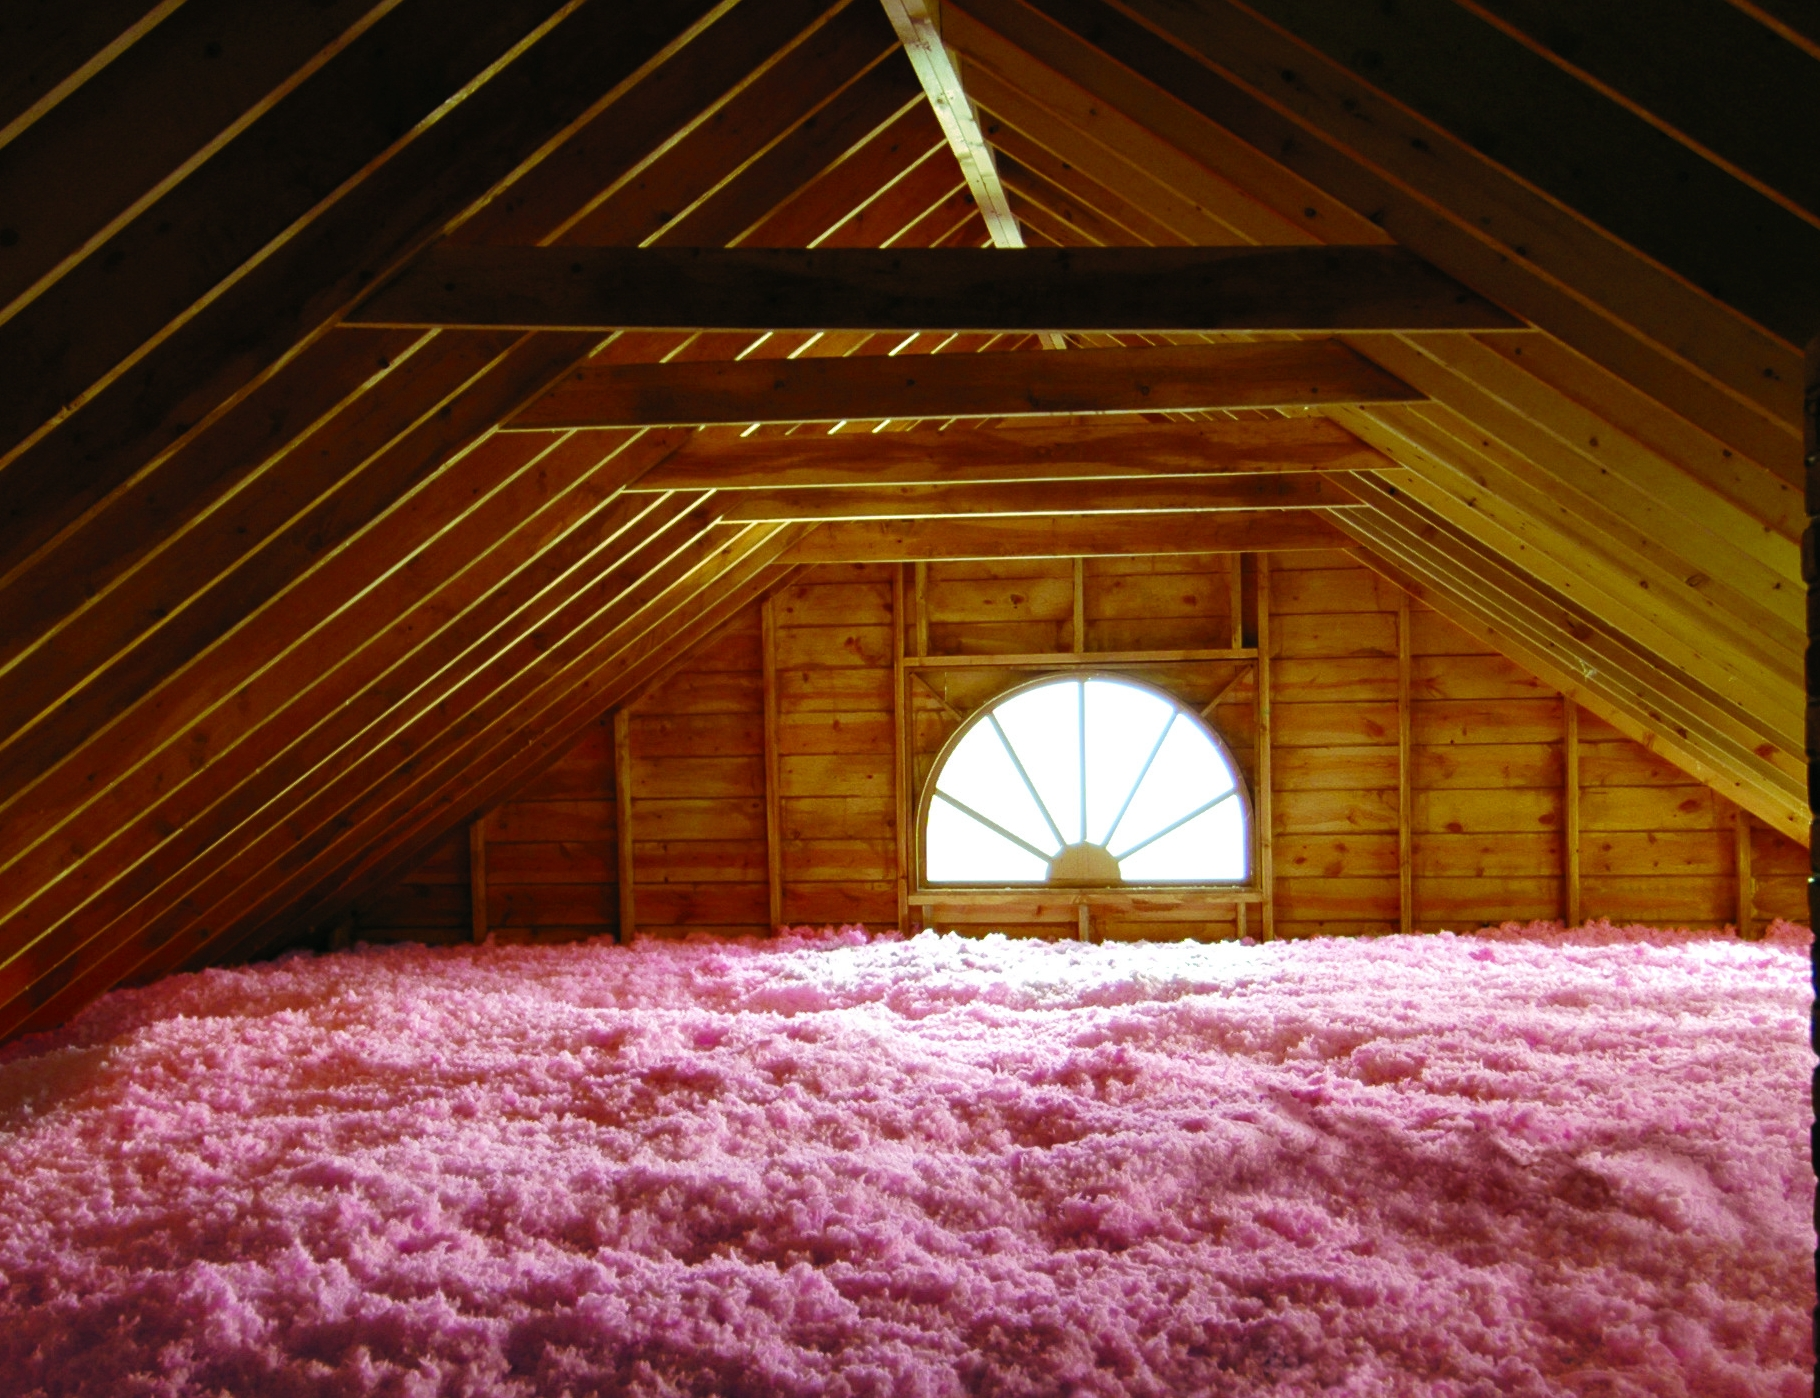 Image of loose fill fiberglass insulation installed in an attic